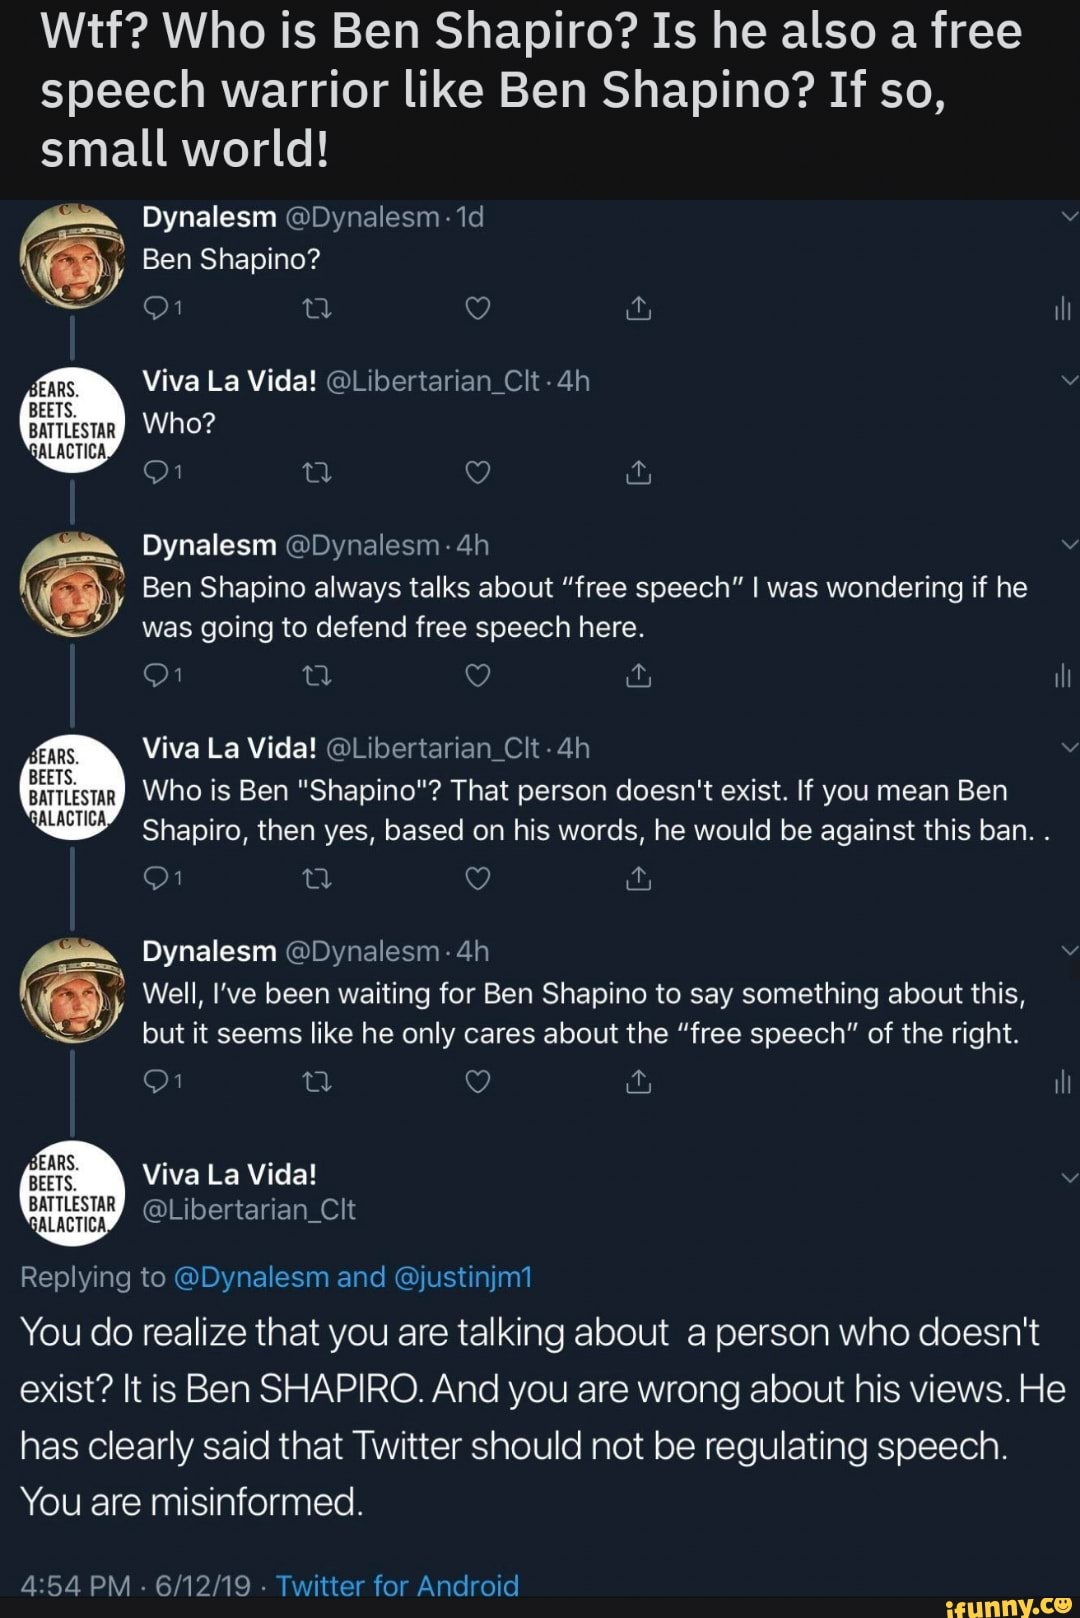 Wtf? Who is Ben Shapiro? Is he also a free speech warrior